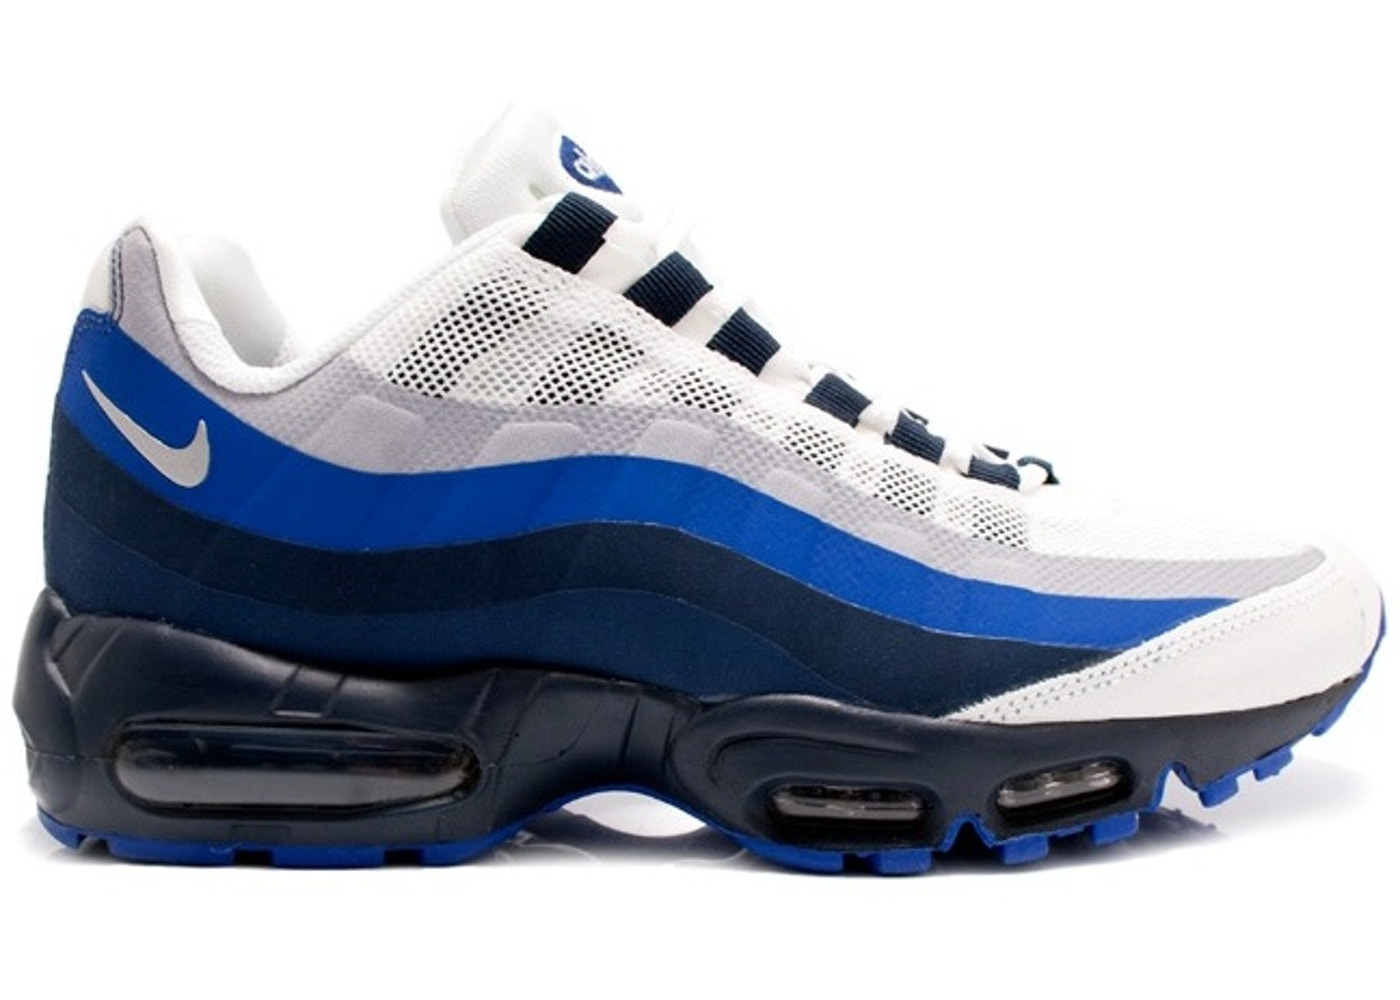 finest selection f3133 b6dc3 Nike Air Max 95 Shoes - Price Premium